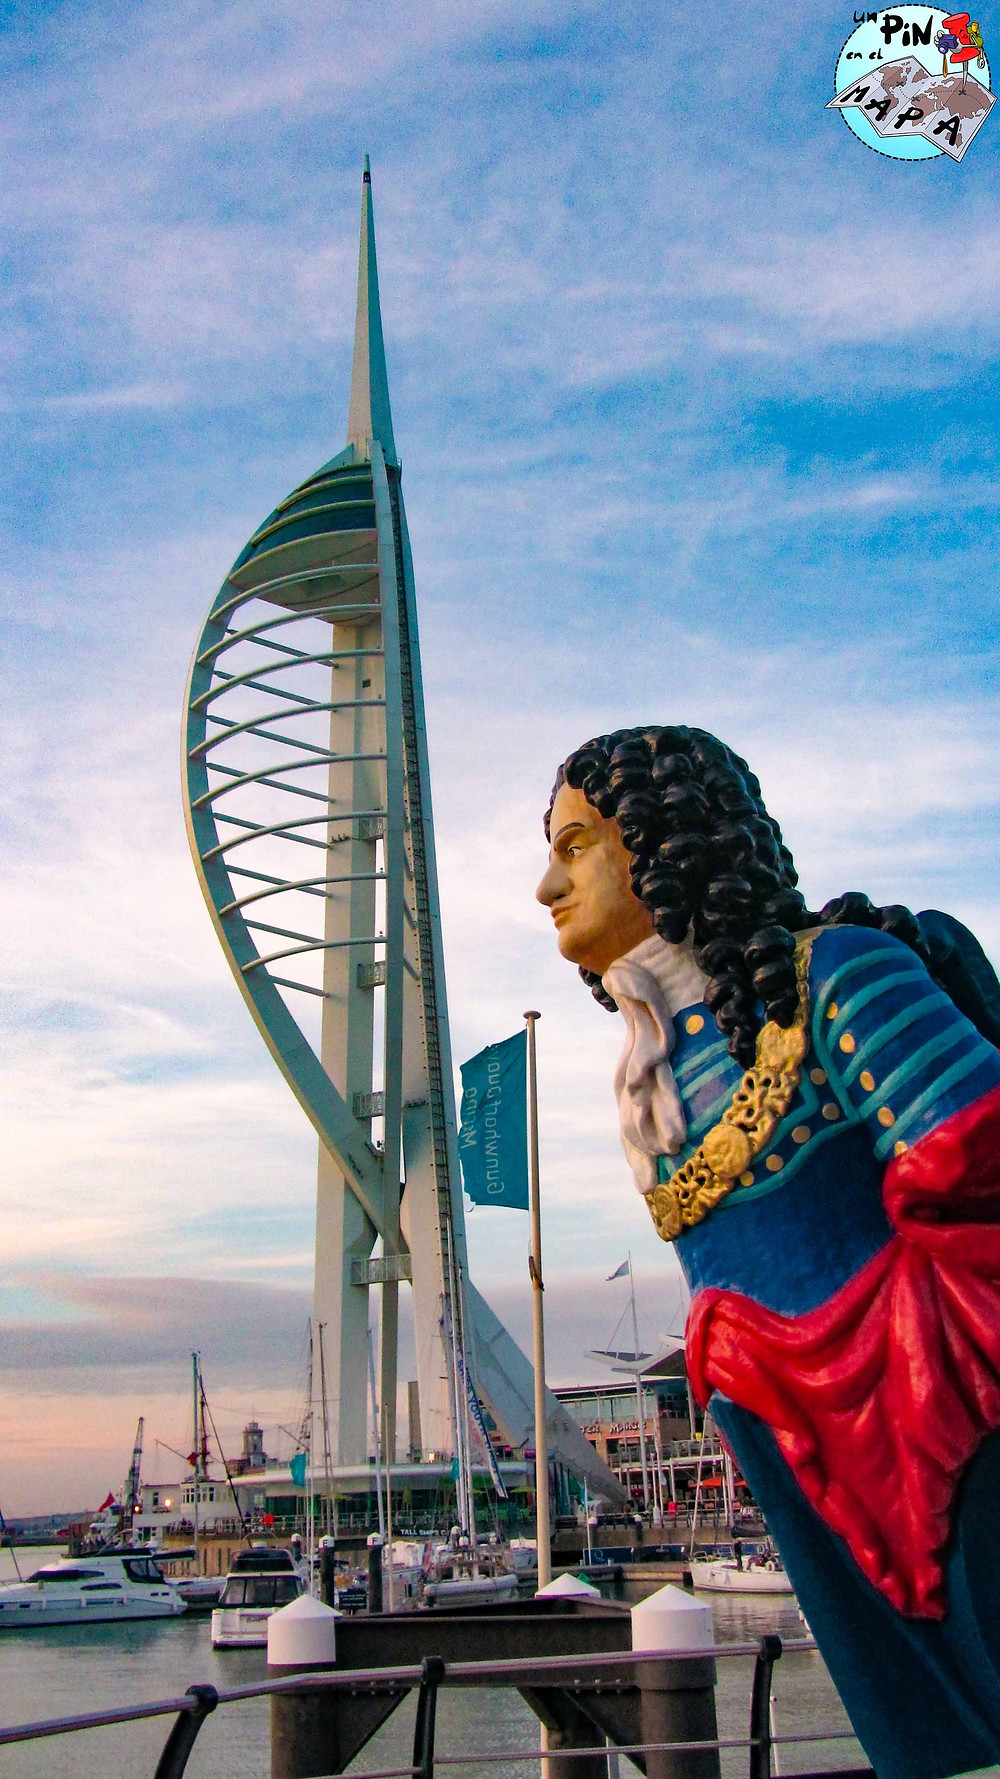 Spinnaker Tower en Portsmouth | Un Pin en el Mapa